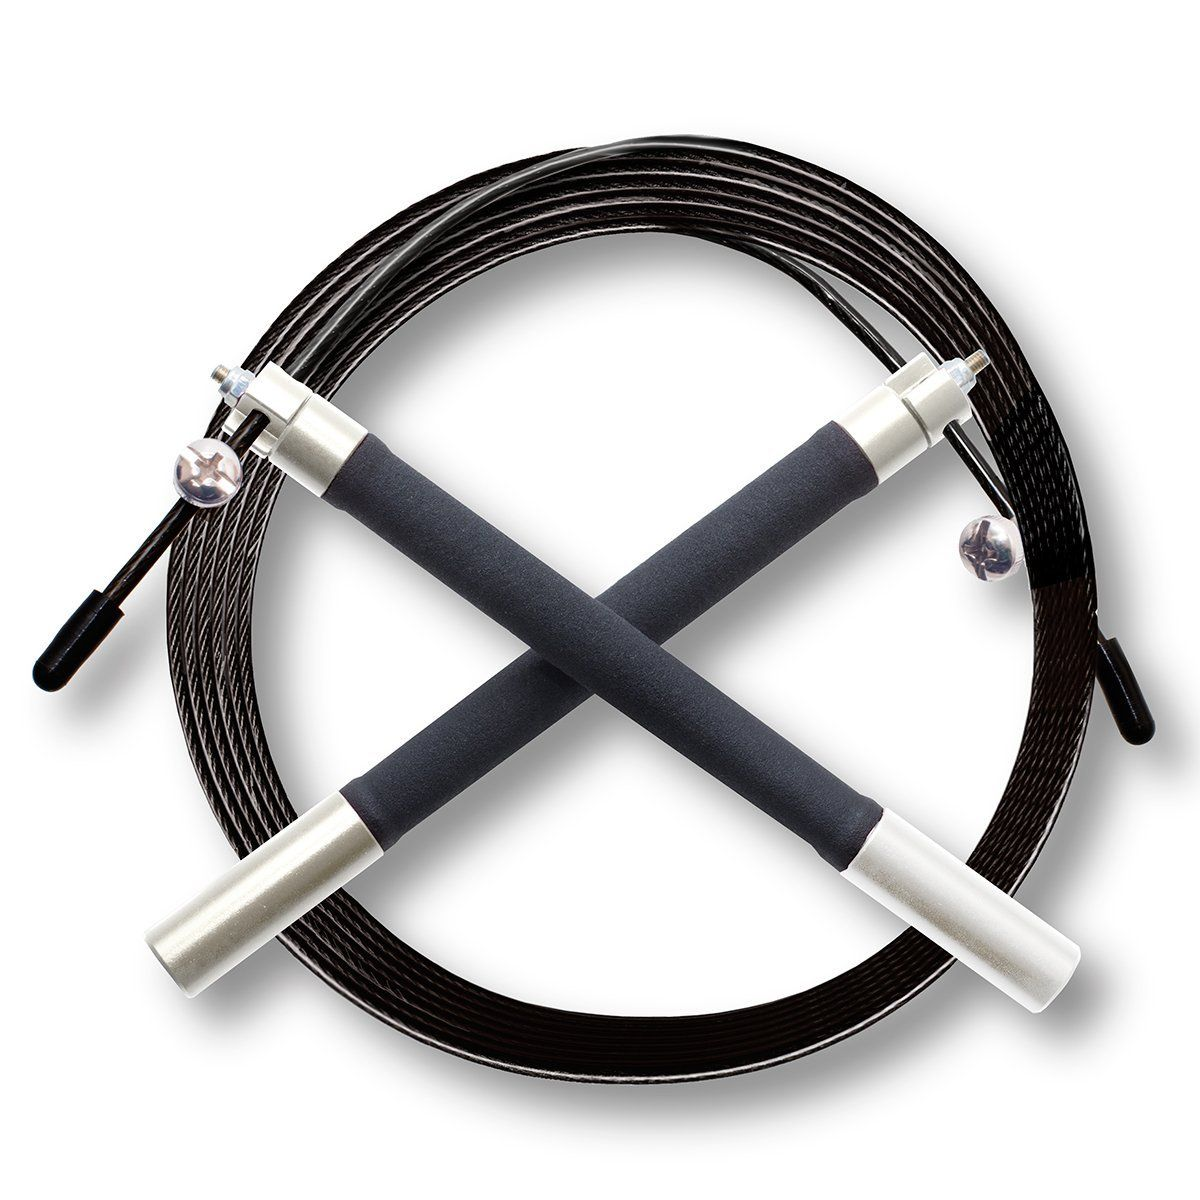 Top 10 Best Jump Ropes Reviews Dog Agility Best Jump Rope Agility Training For Dogs